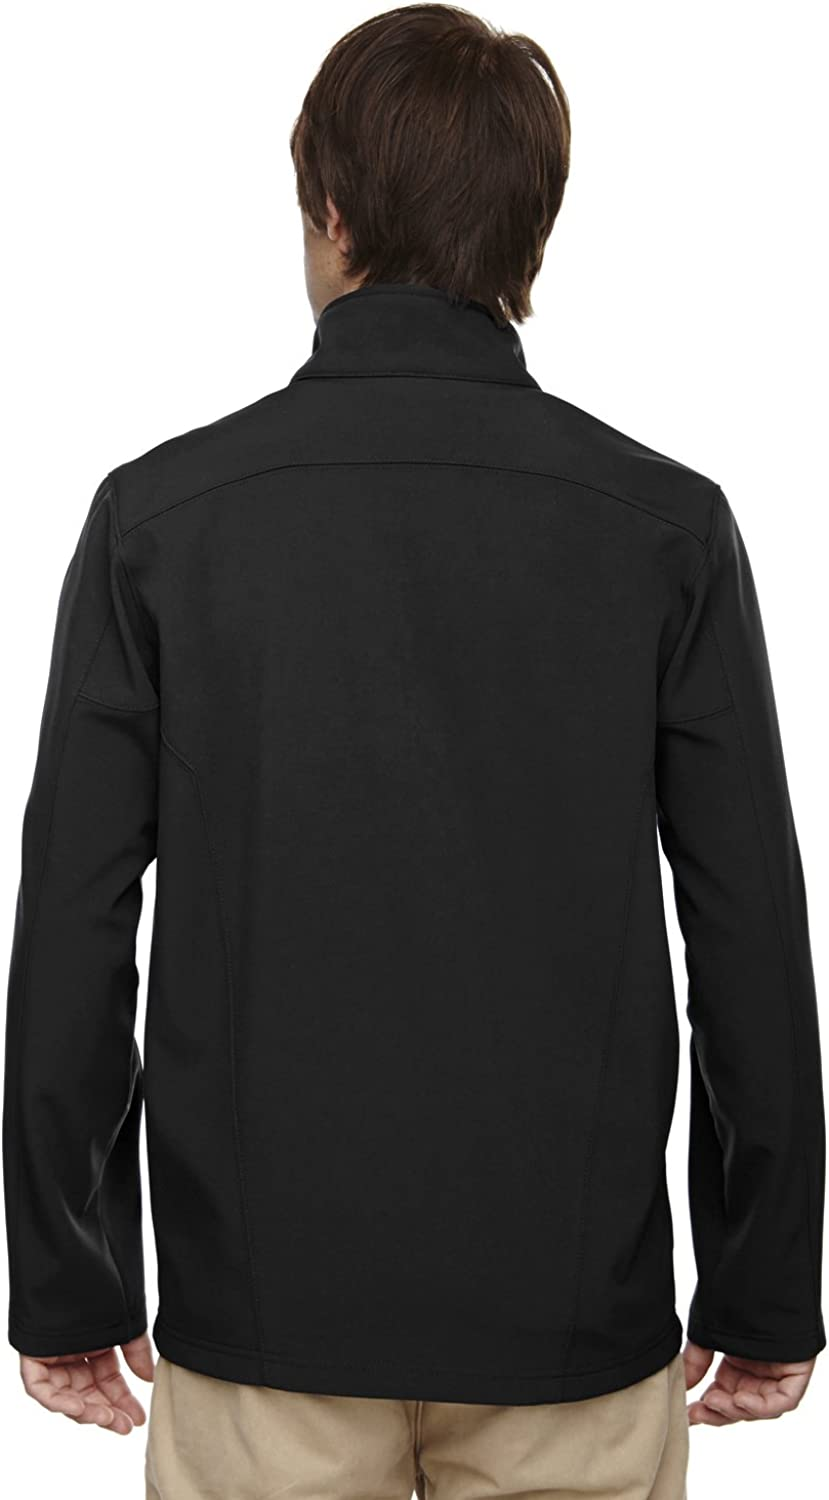 A Product of Ash City Core 365 Mens Cruise Two-Layer Fleece Bonded Soft Shell V